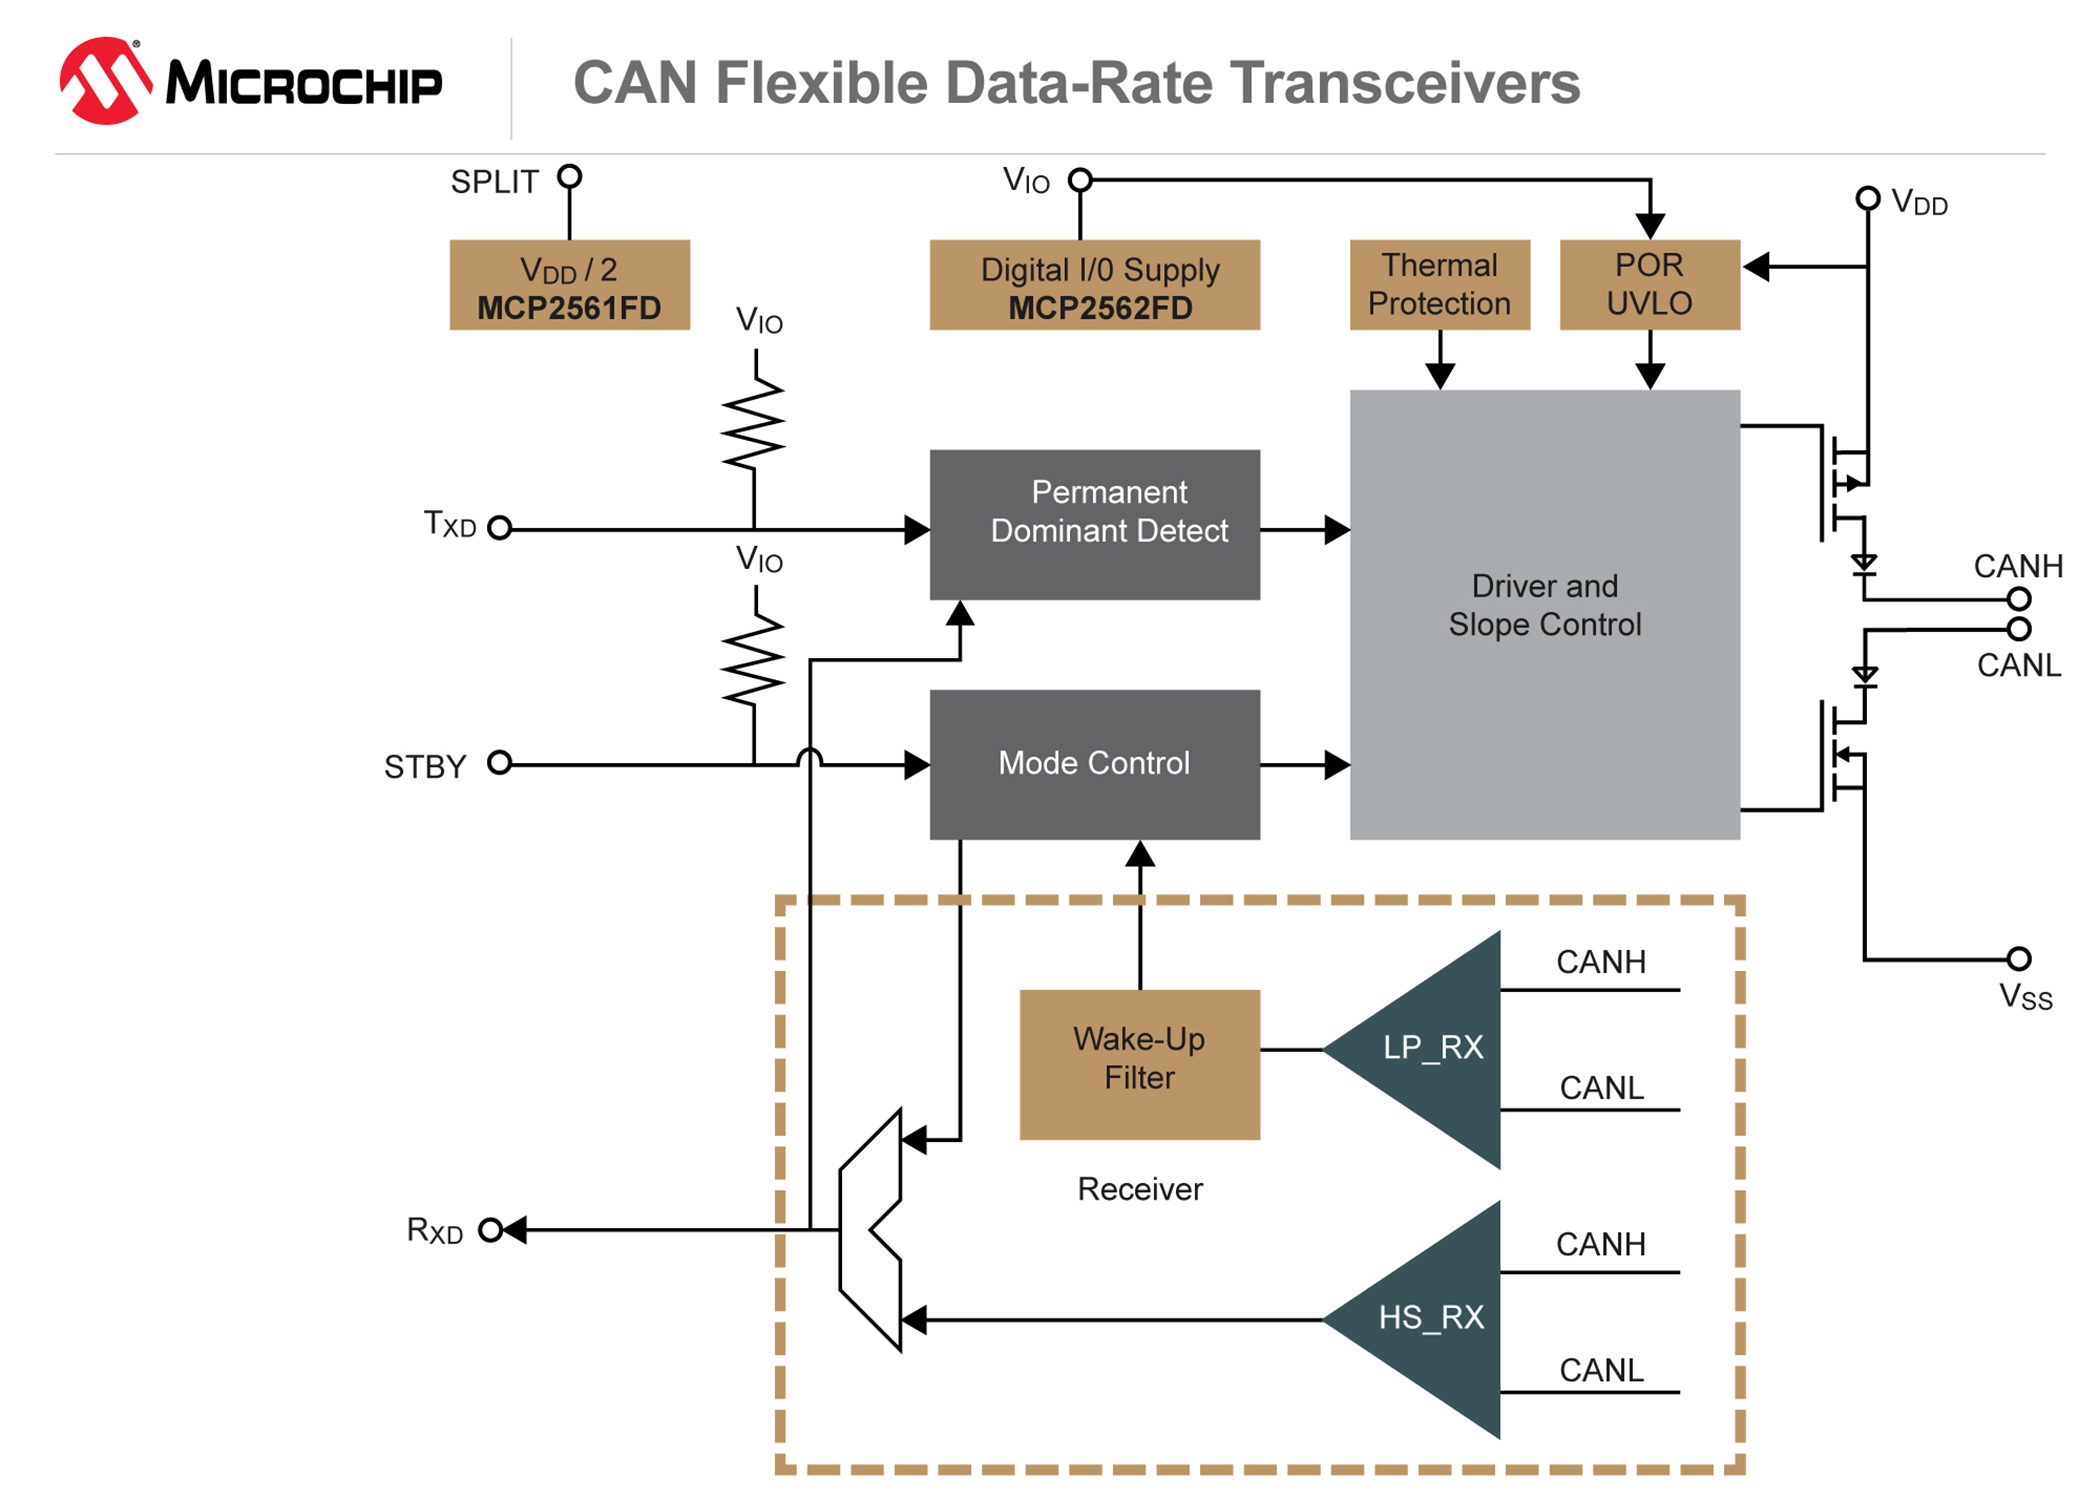 Can Flexible Data Rate Transceiver Family From Microchip Meets And Mixed Signal Transceivers Enable Customers 150311 Aipd Diag Mcp2561 7x5